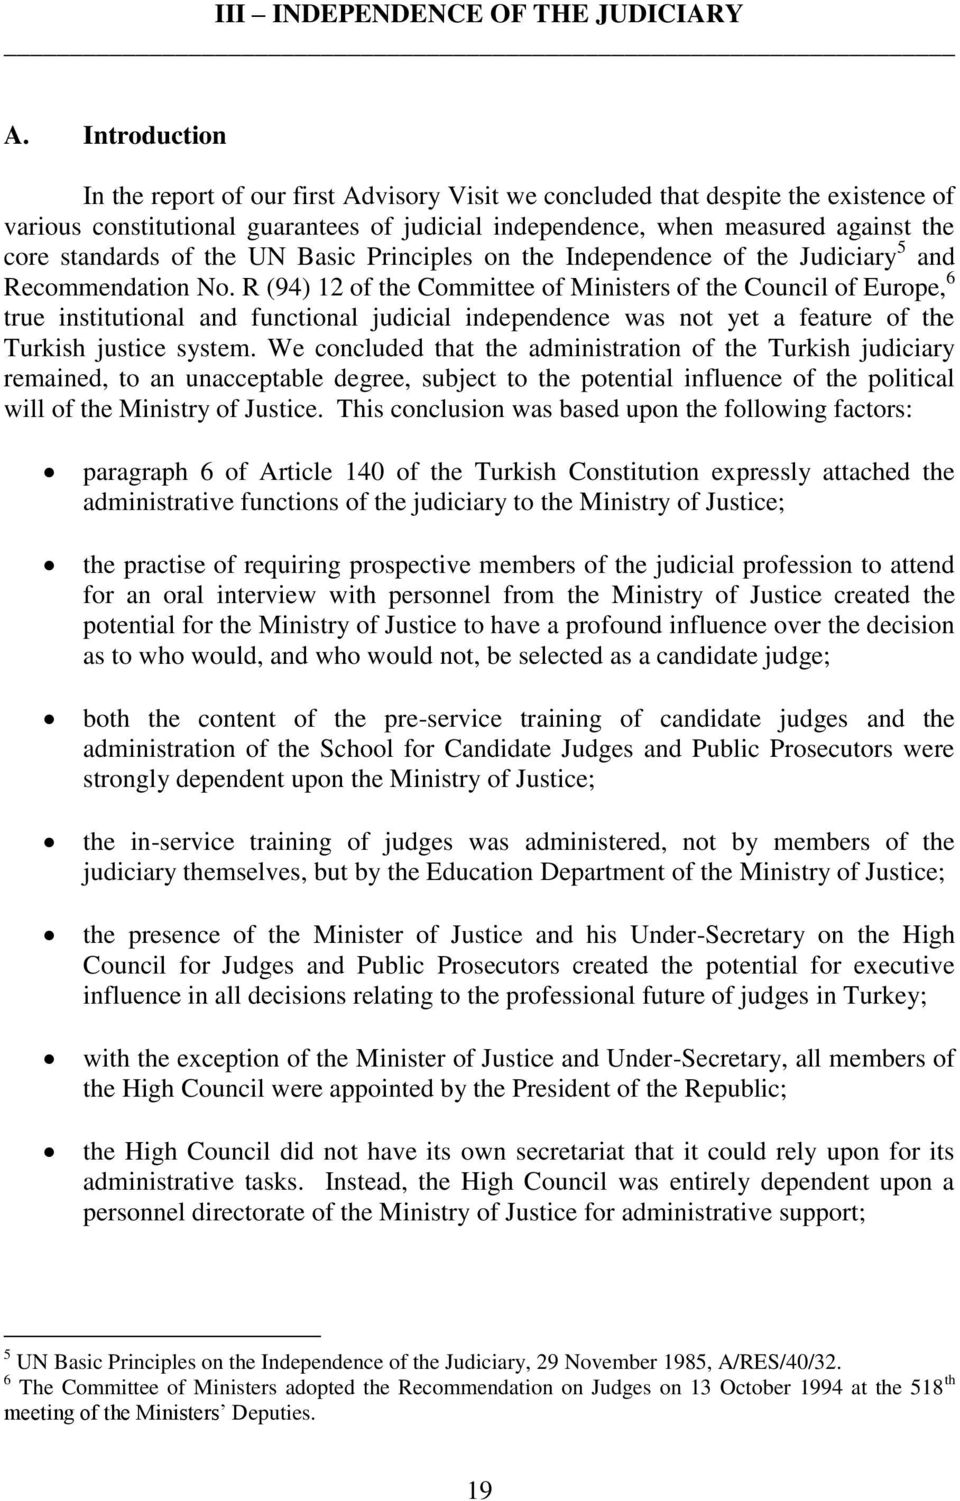 of the UN Basic Principles on the Independence of the Judiciary 5 and Recommendation No.